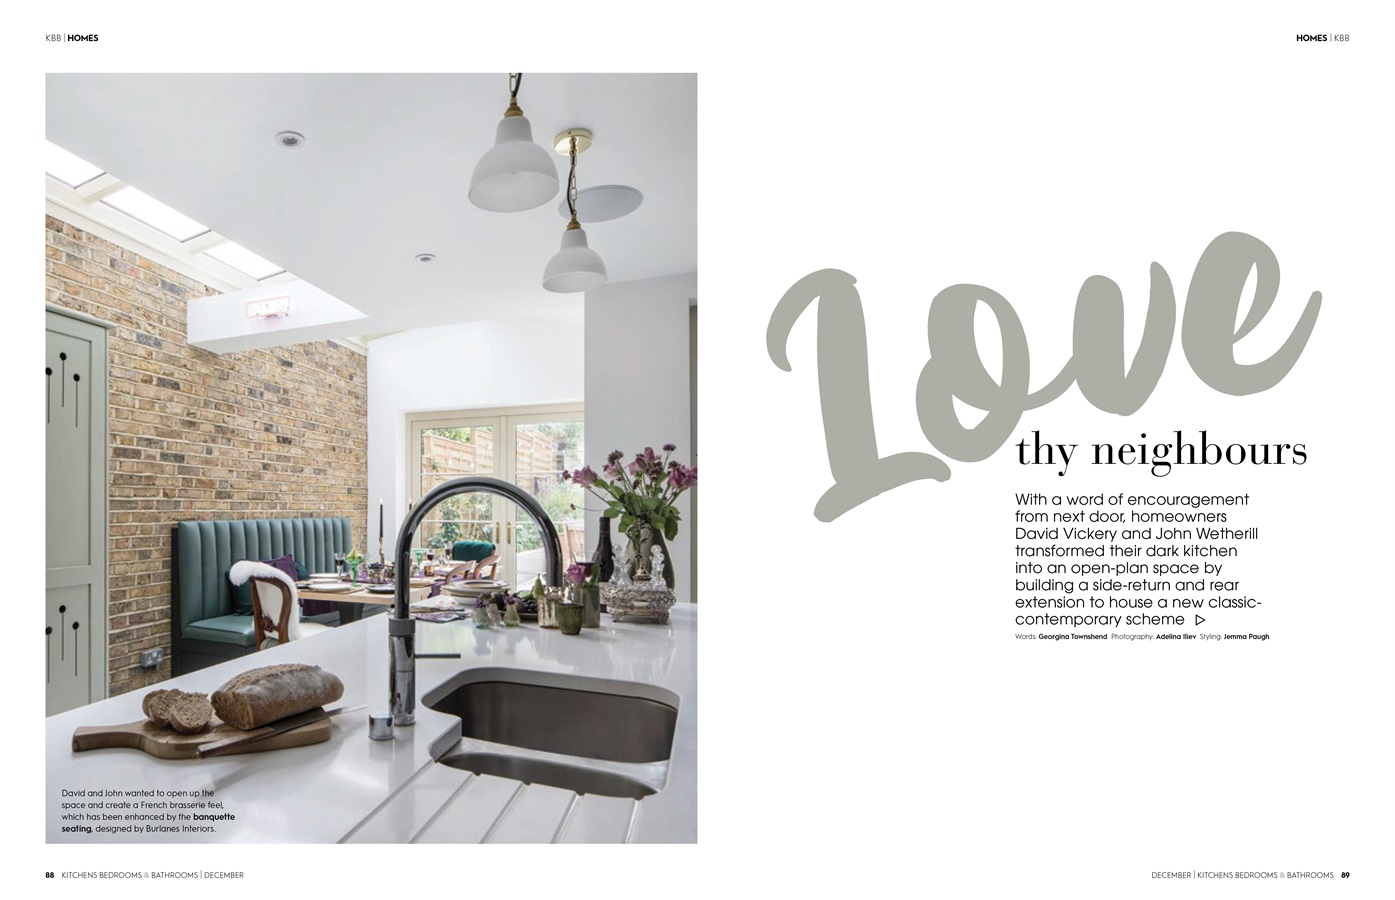 Burlanes Hoyden Kitchen Featured In Kitchens Bedrooms & Bathrooms Magazine - Burlanes bespoke Hoyden kitchen in Crystal Palace, London, featured in Kitchens, Bedrooms & Bathrooms magazine.